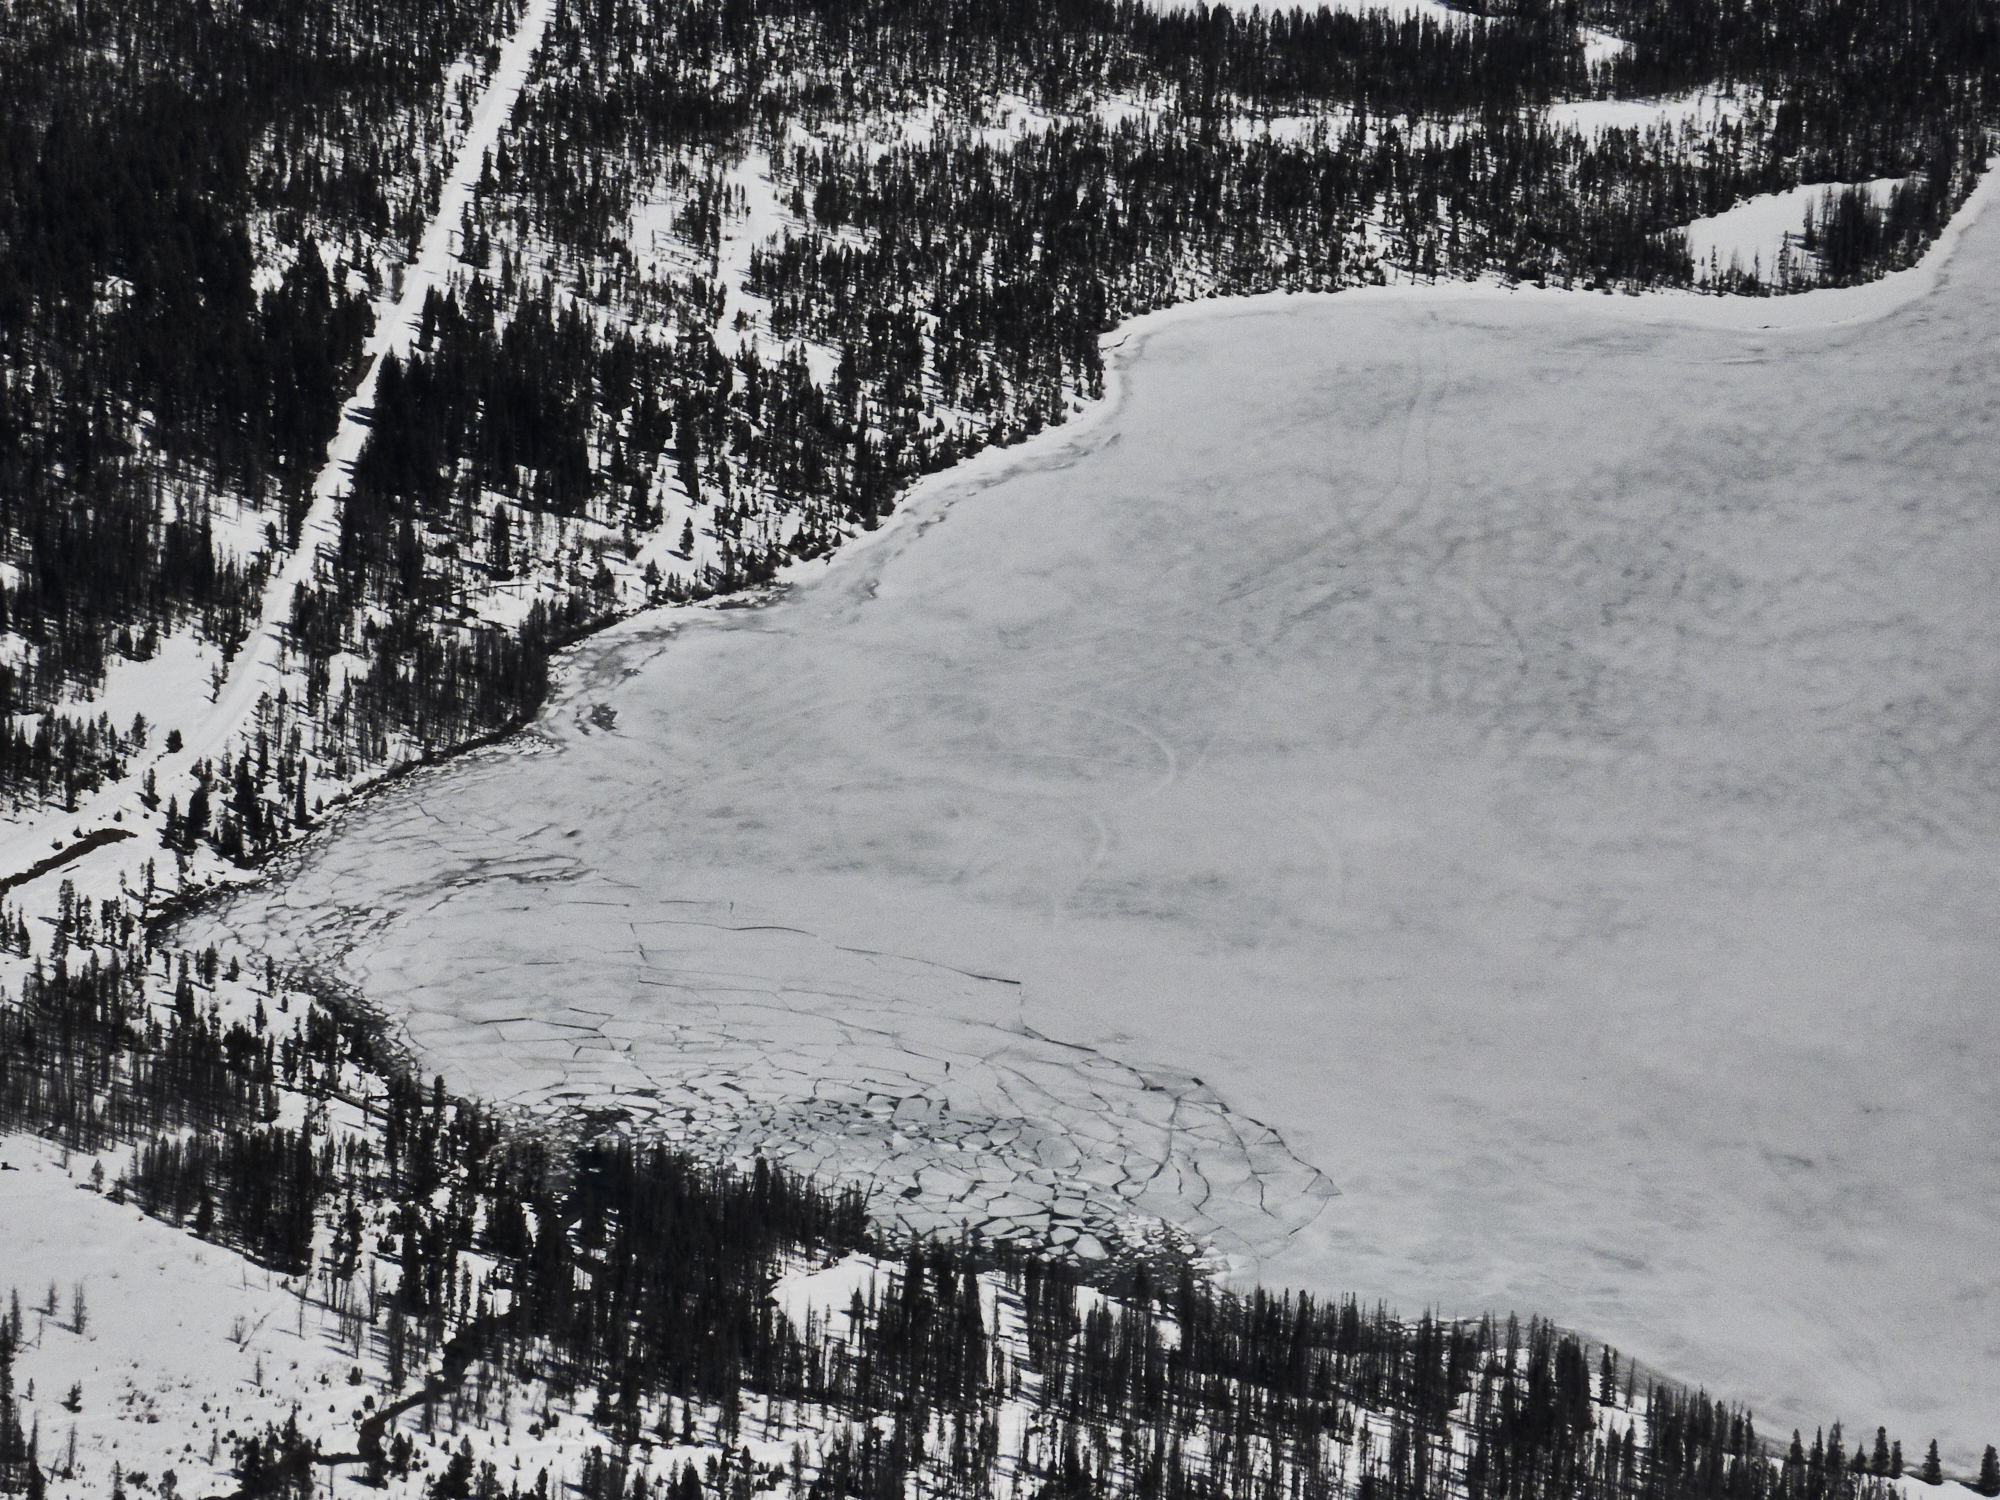 Concentric cracks on the ice-covered surface of Stanley Lake on April 9, 2020